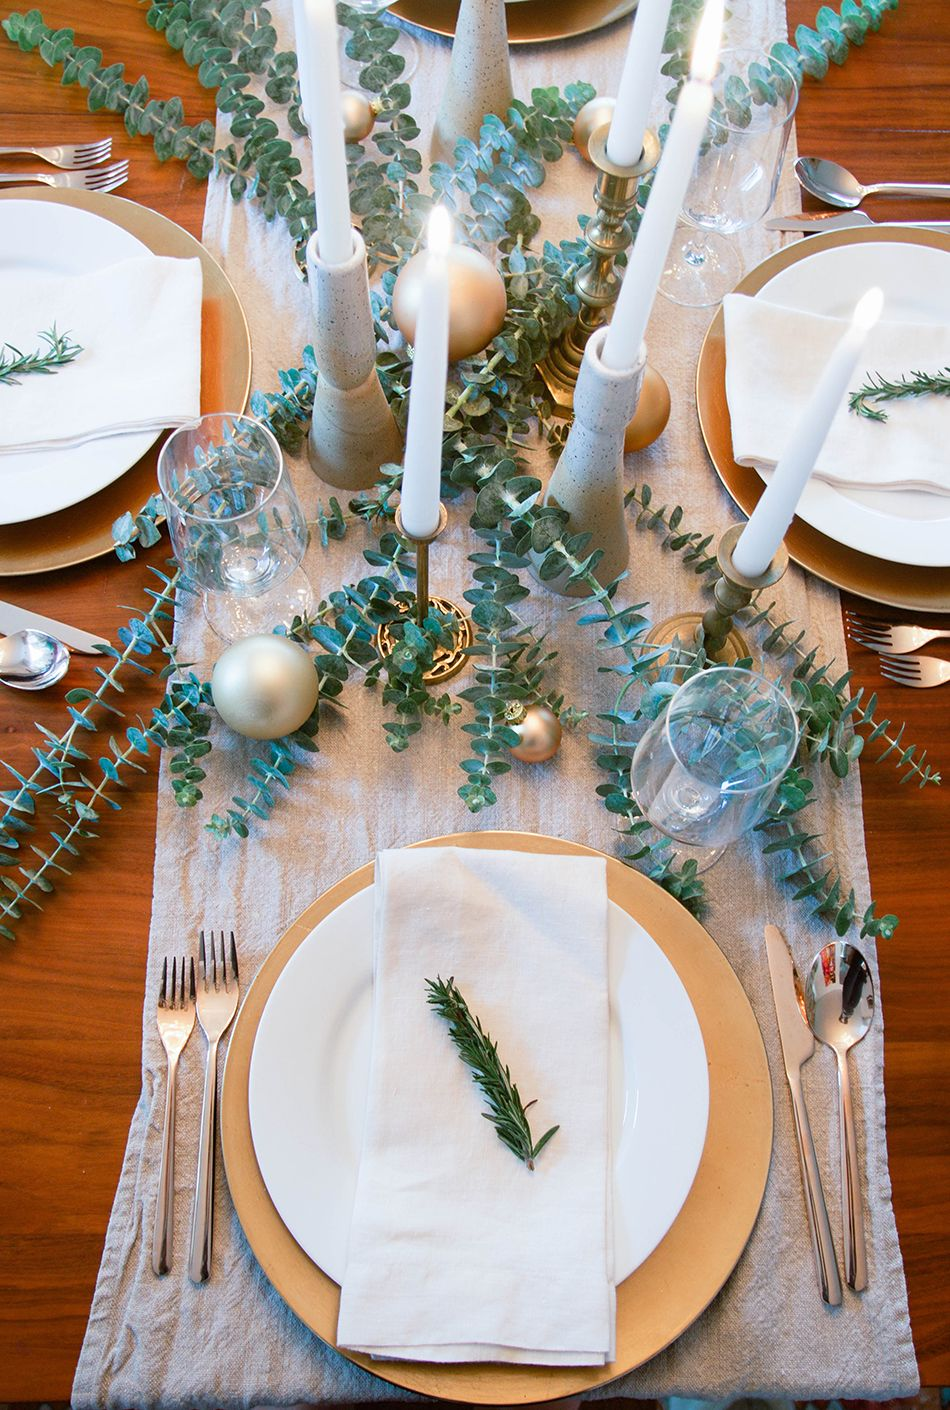 Last Minute Table Setting Ideas For The Holidays Simple Holiday Setting Simple Table Settings Entertaining Table Settings Christmas Table Settings